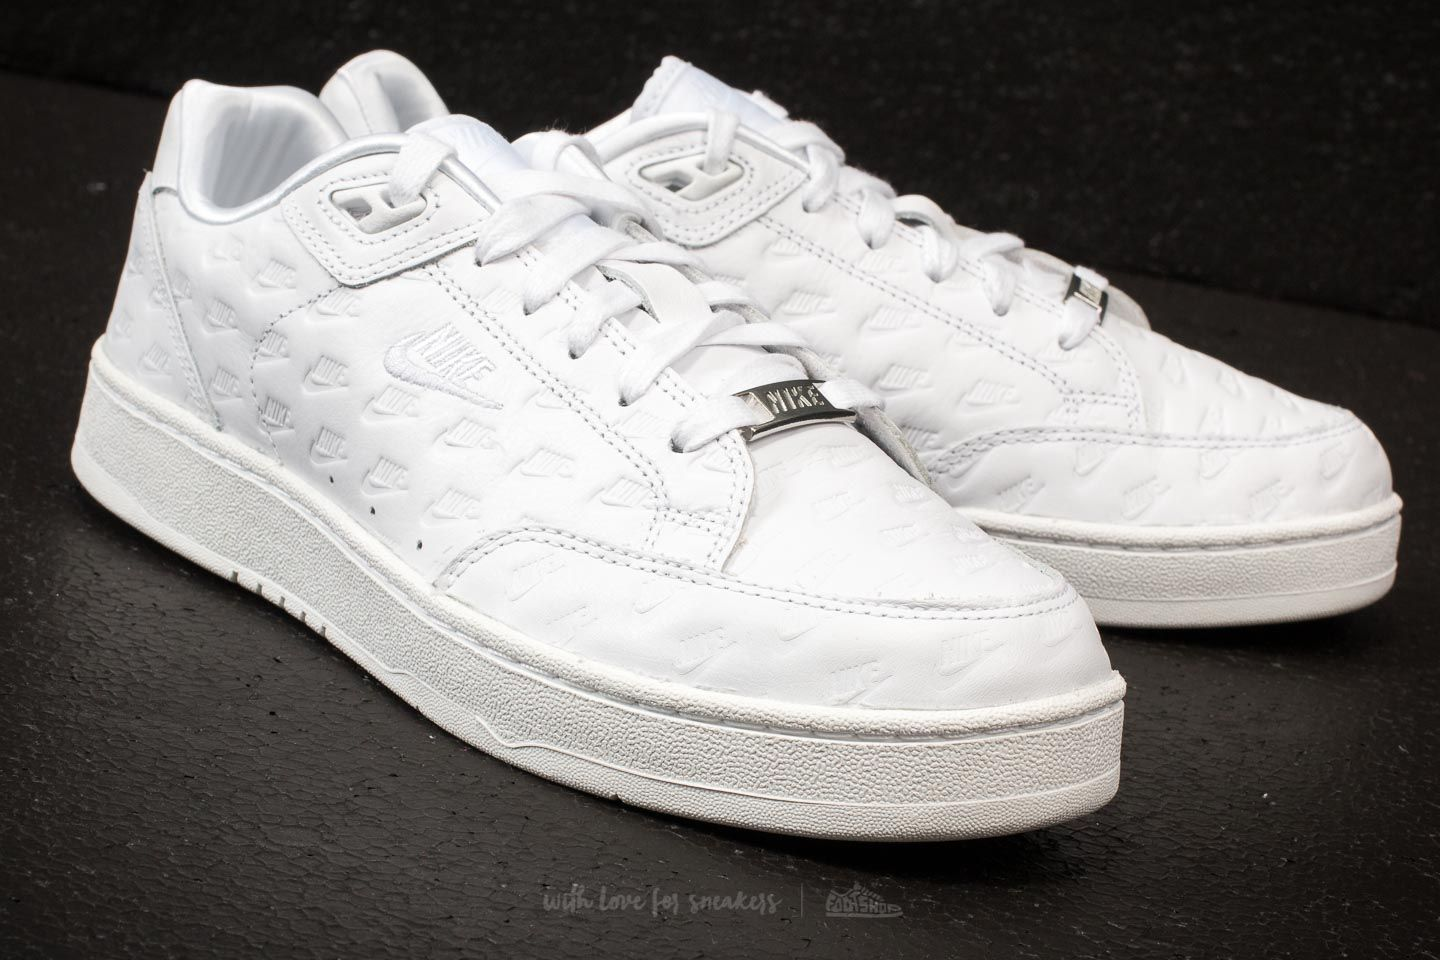 new product db457 d06fe Nike Grandstand II Pinnacle White/ White,Matte Silver at a great price 109  \u20ac ...